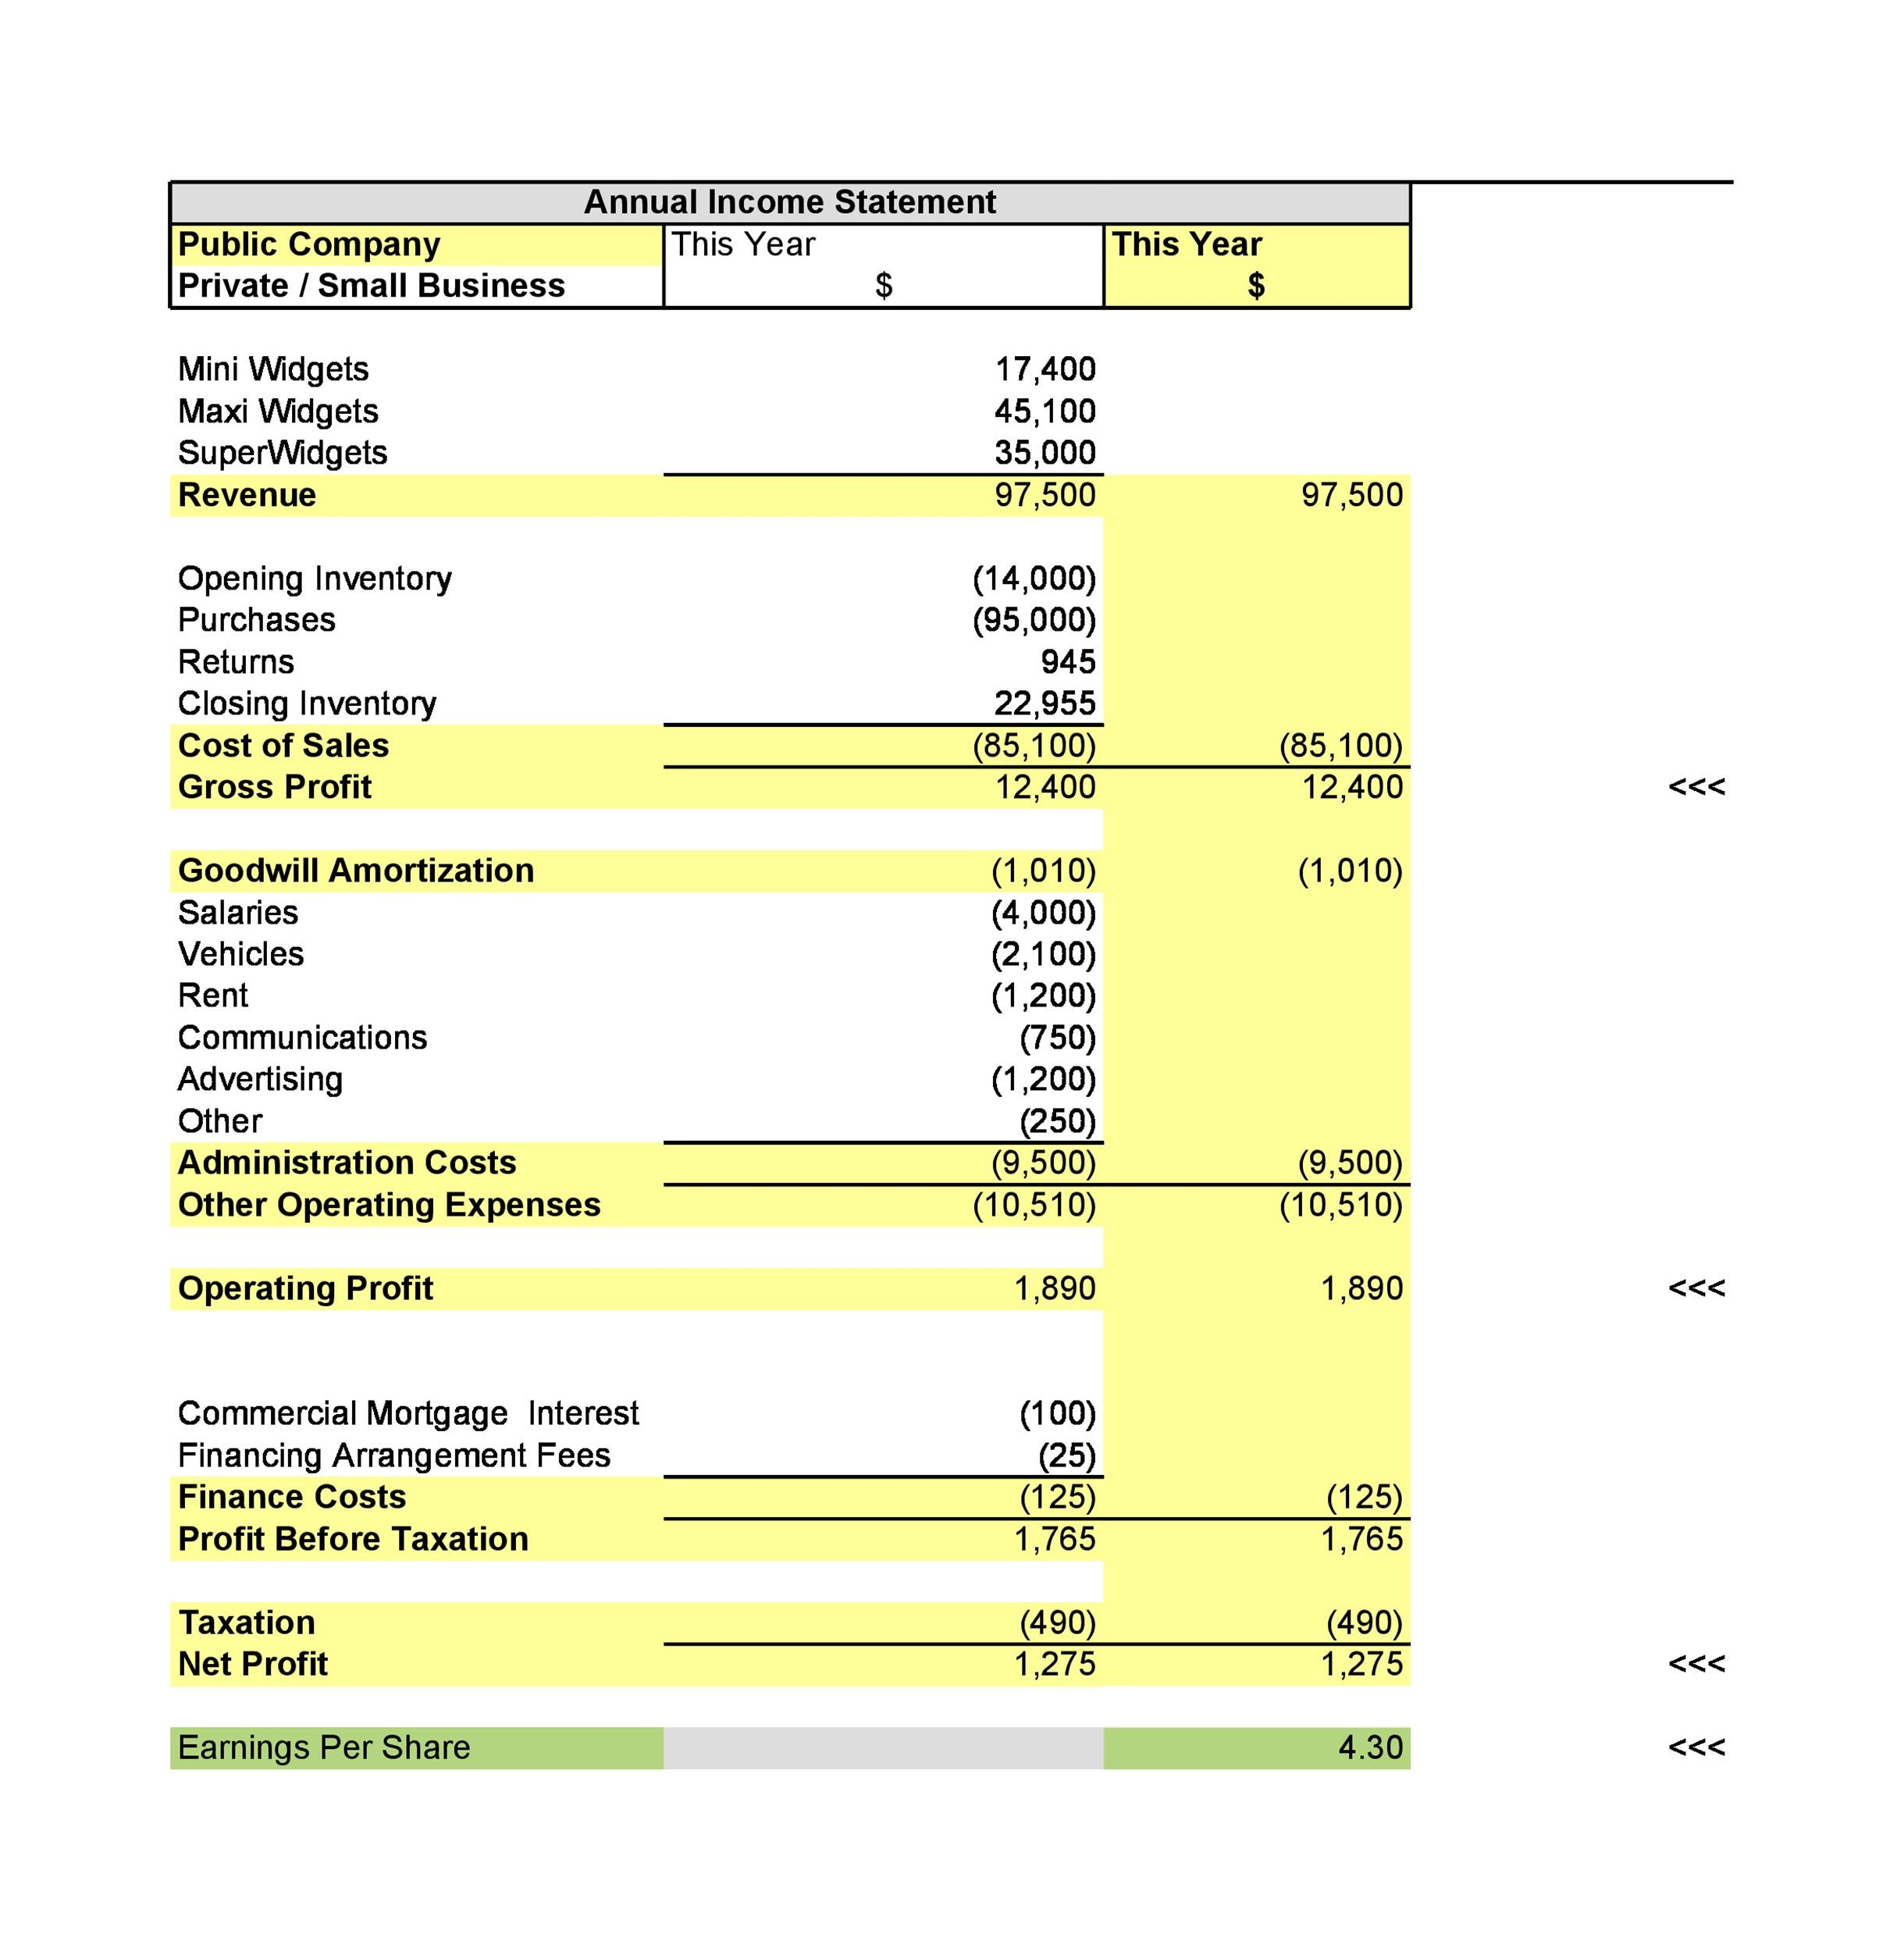 27 Income Statement Examples & Templates (Single/Multi step, Pro-forma)